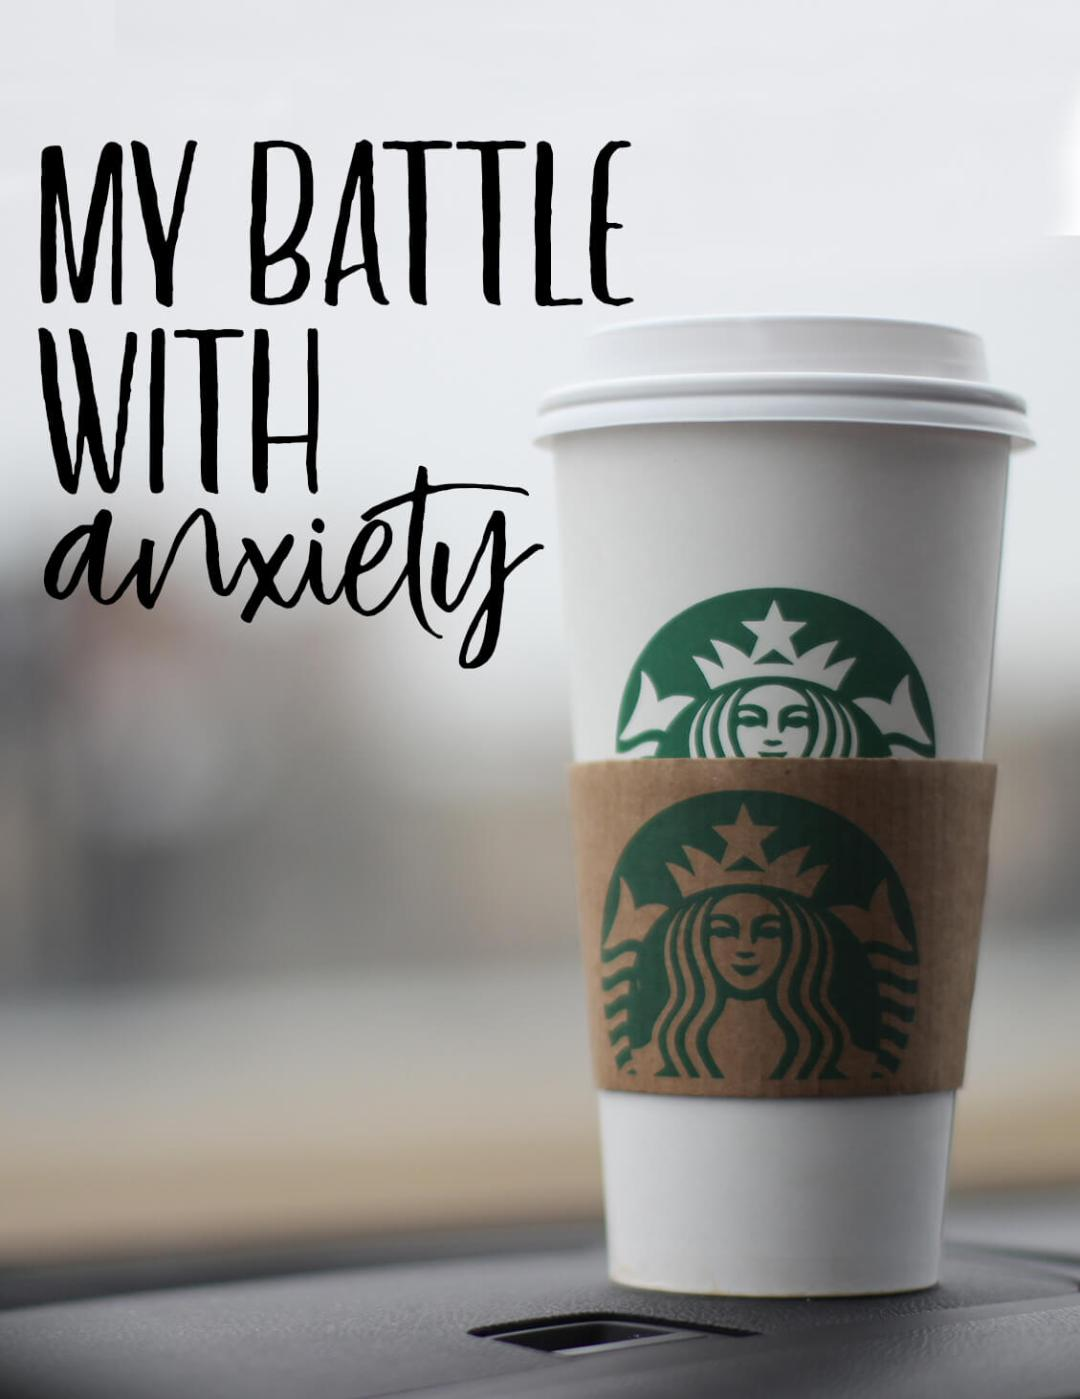 My Battle with Anxiety